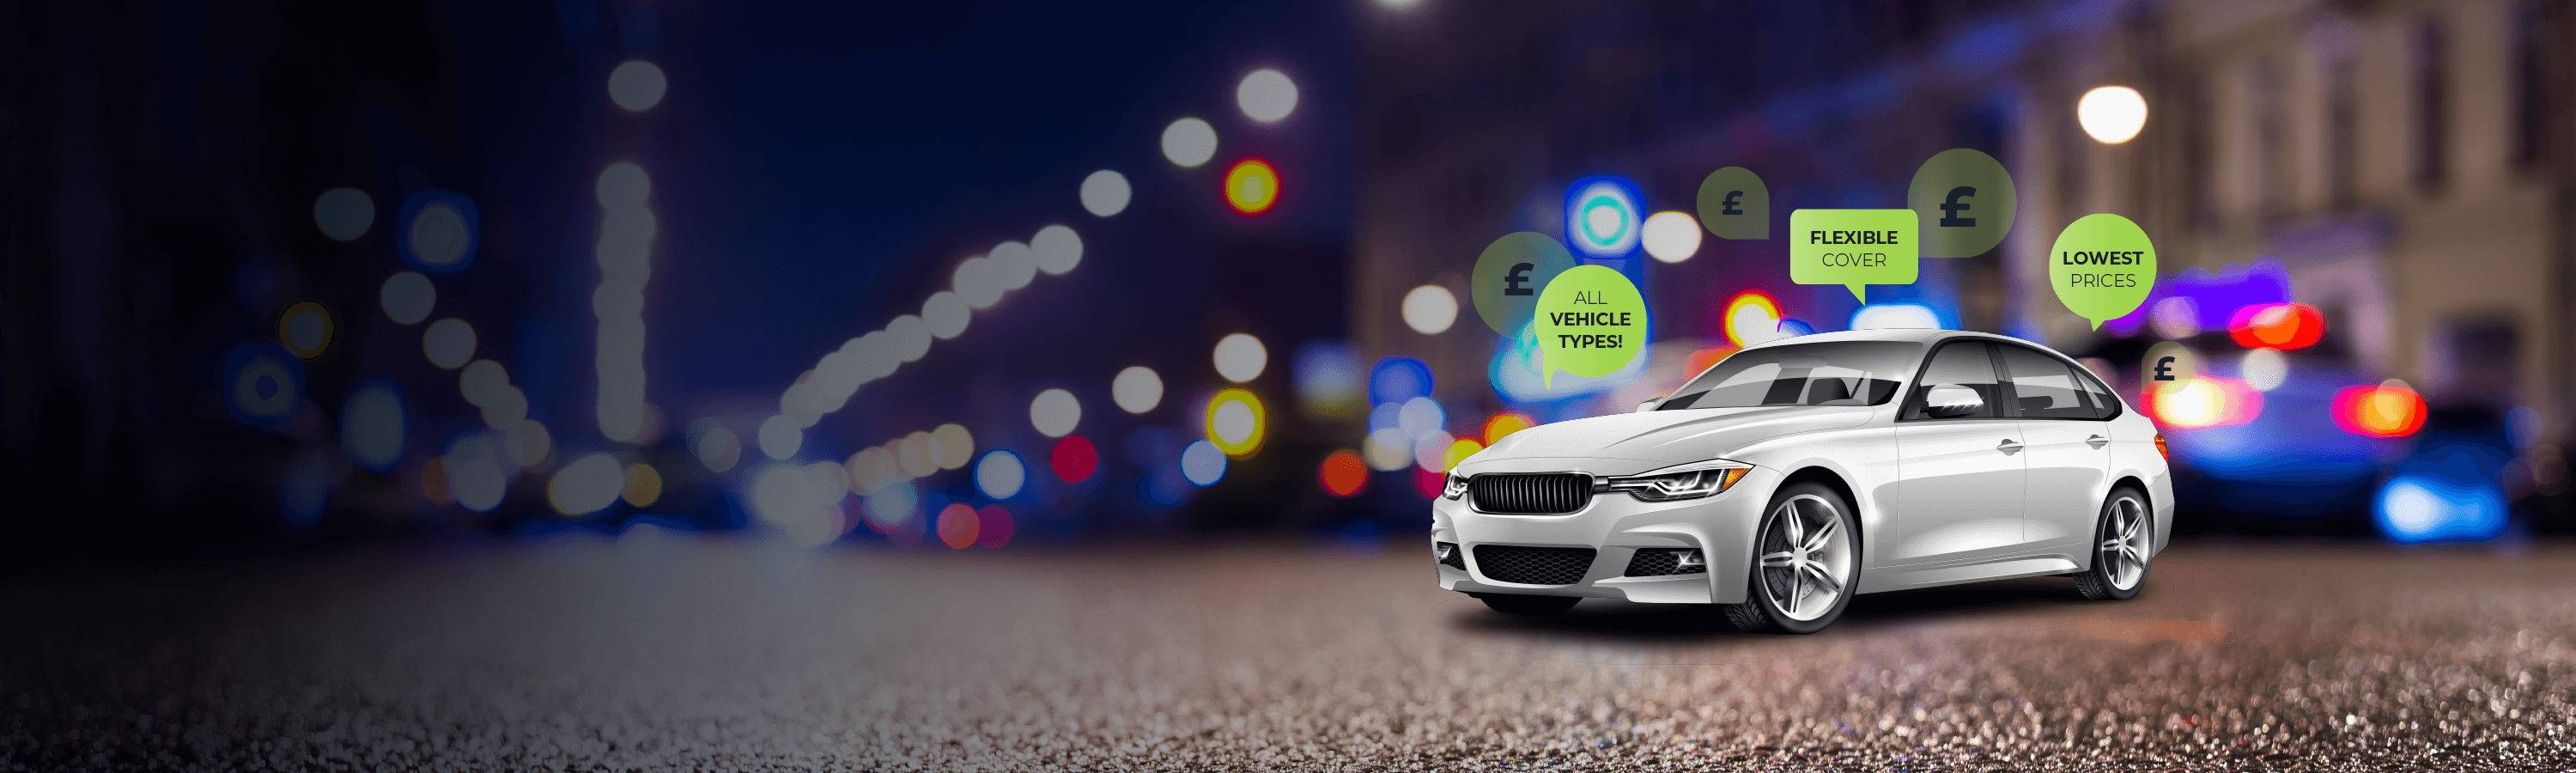 Get a cheap car insurance quote online today